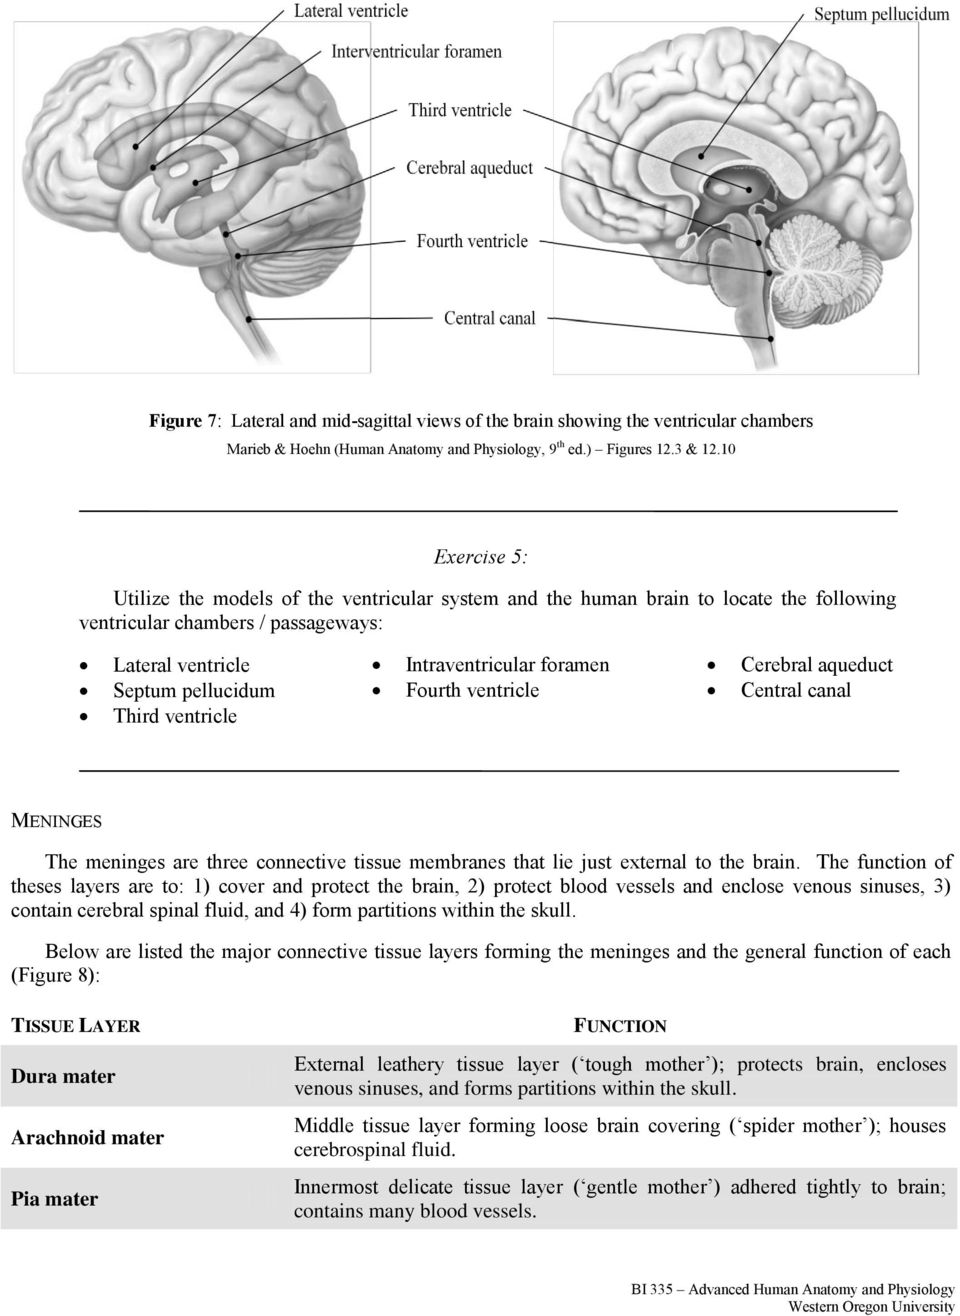 Adapted From Human Anatomy Physiology By Marieb And Hoehn 9 Th Ed